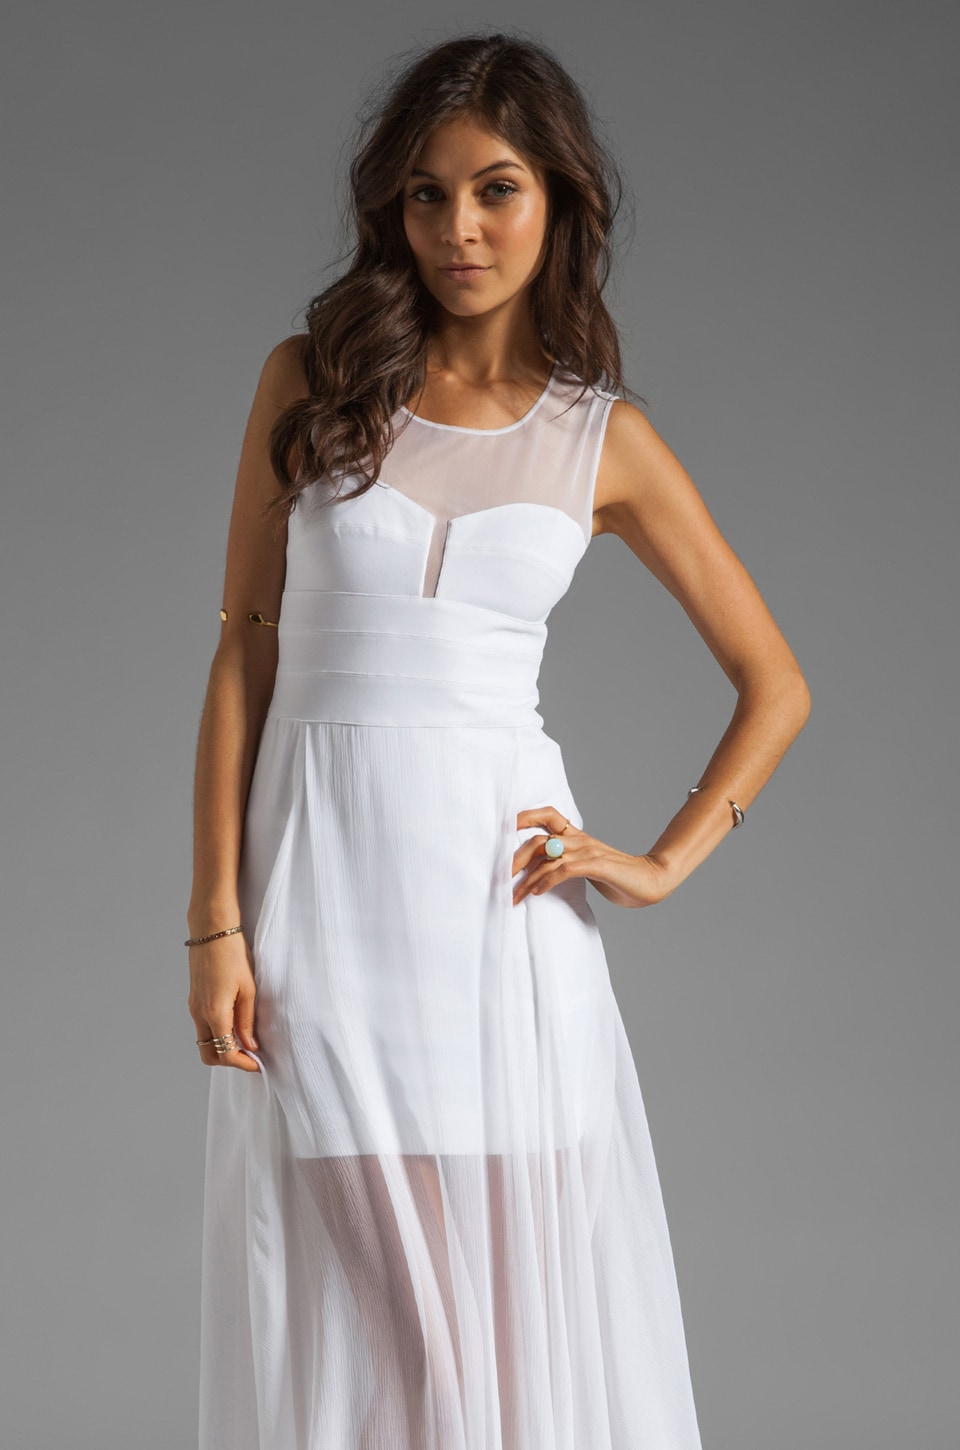 BCBGMAXAZRIA Sheer Maxi Tank Dress in White